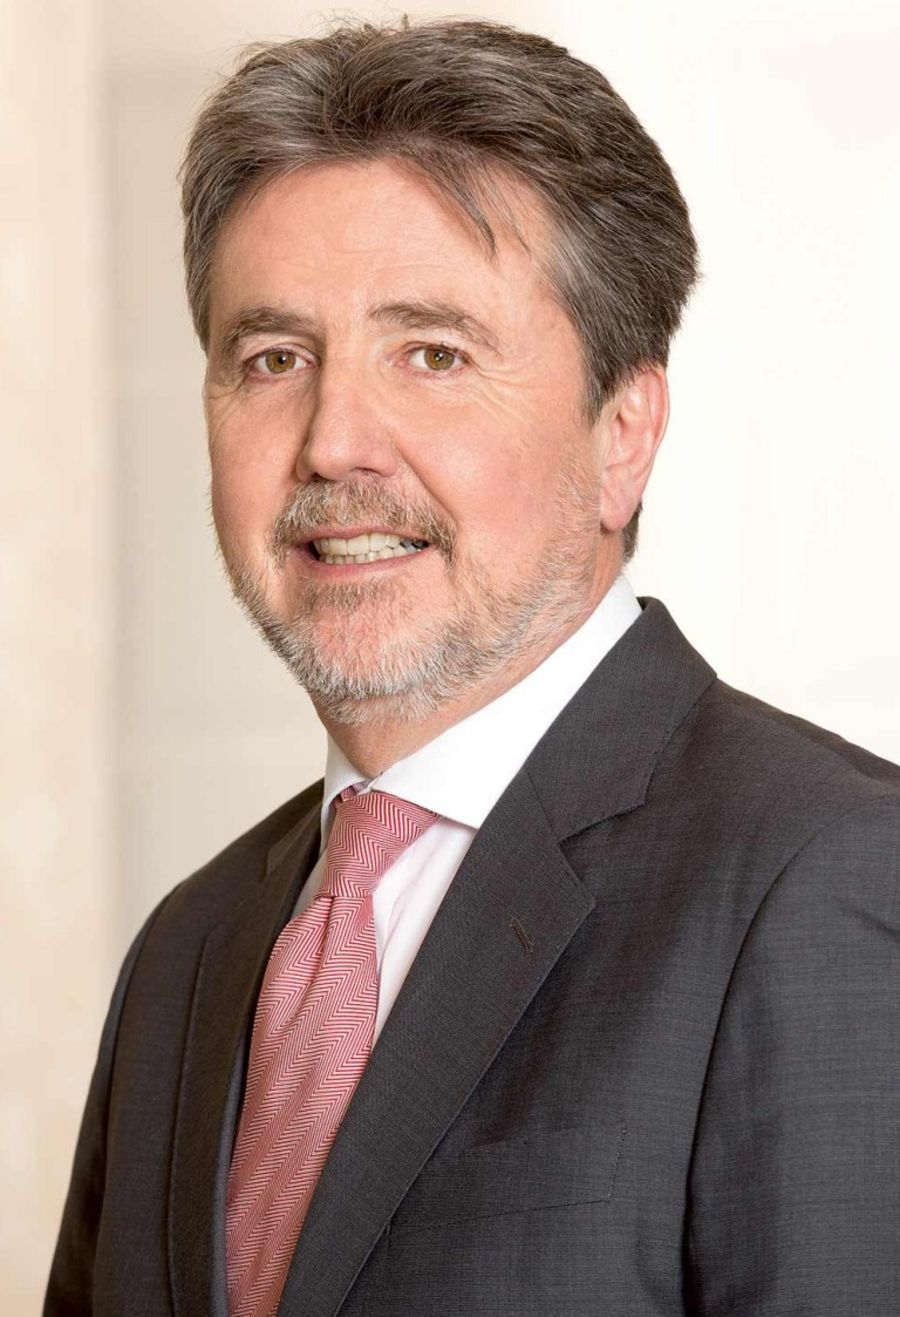 Karl Bier, CEO der UBM Development AG